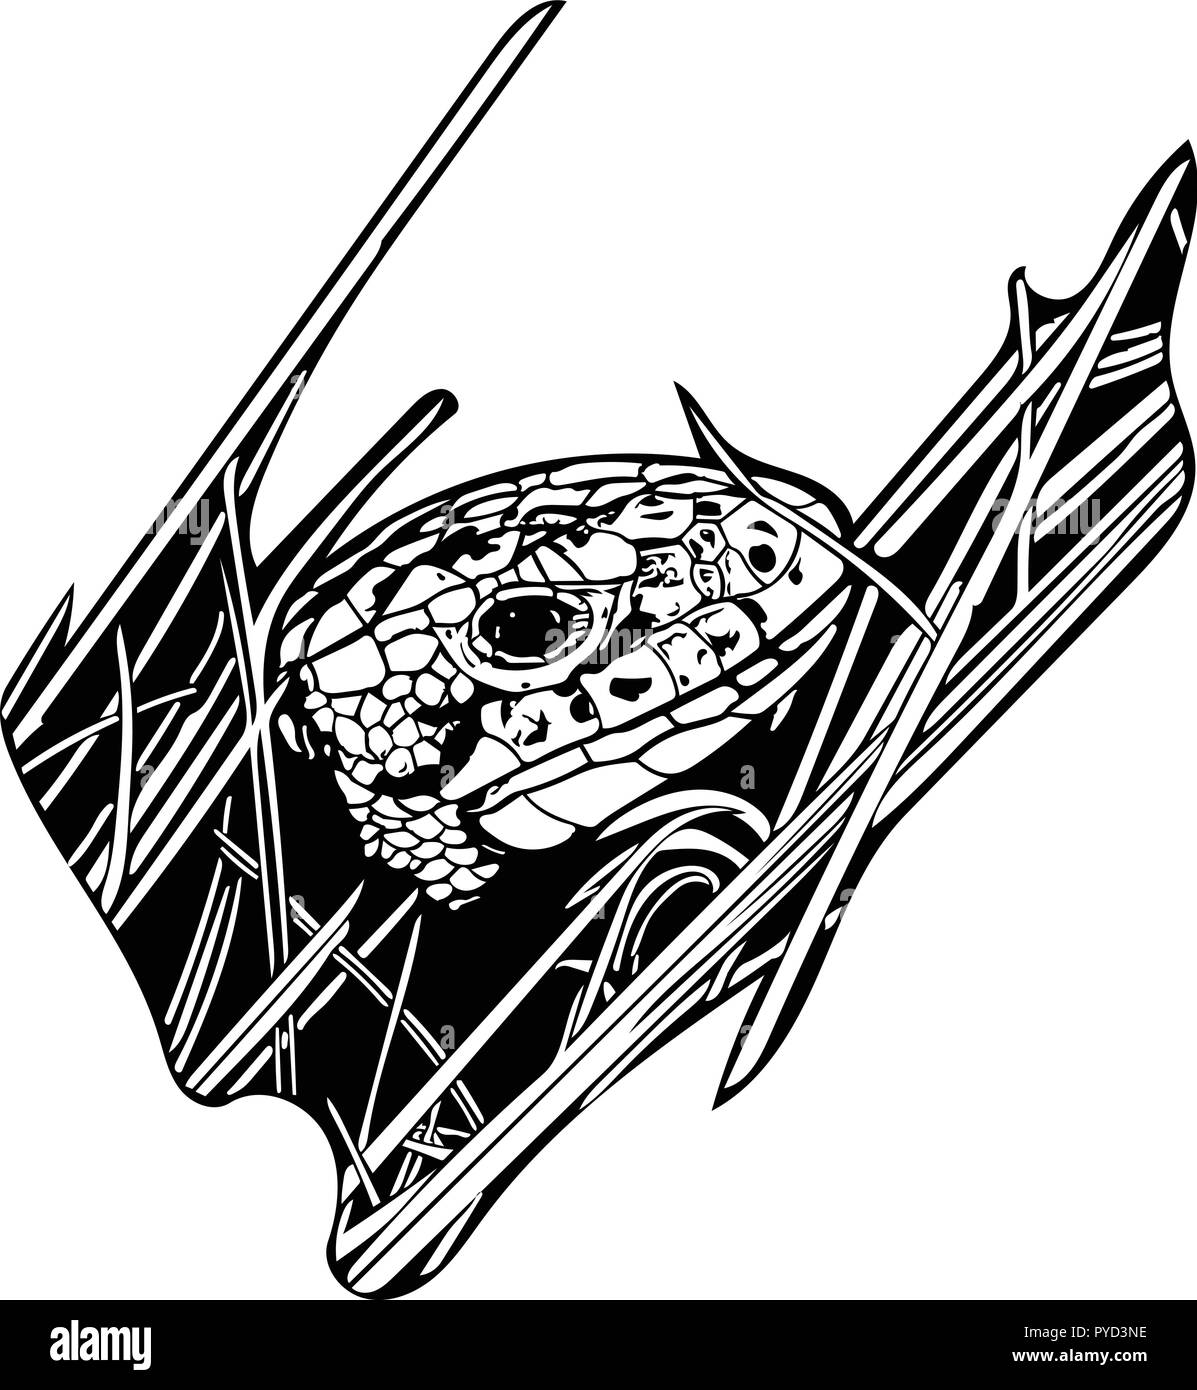 Black and white vector graphic of female Sand lizard peeking out from grass revealing only its head - Stock Vector